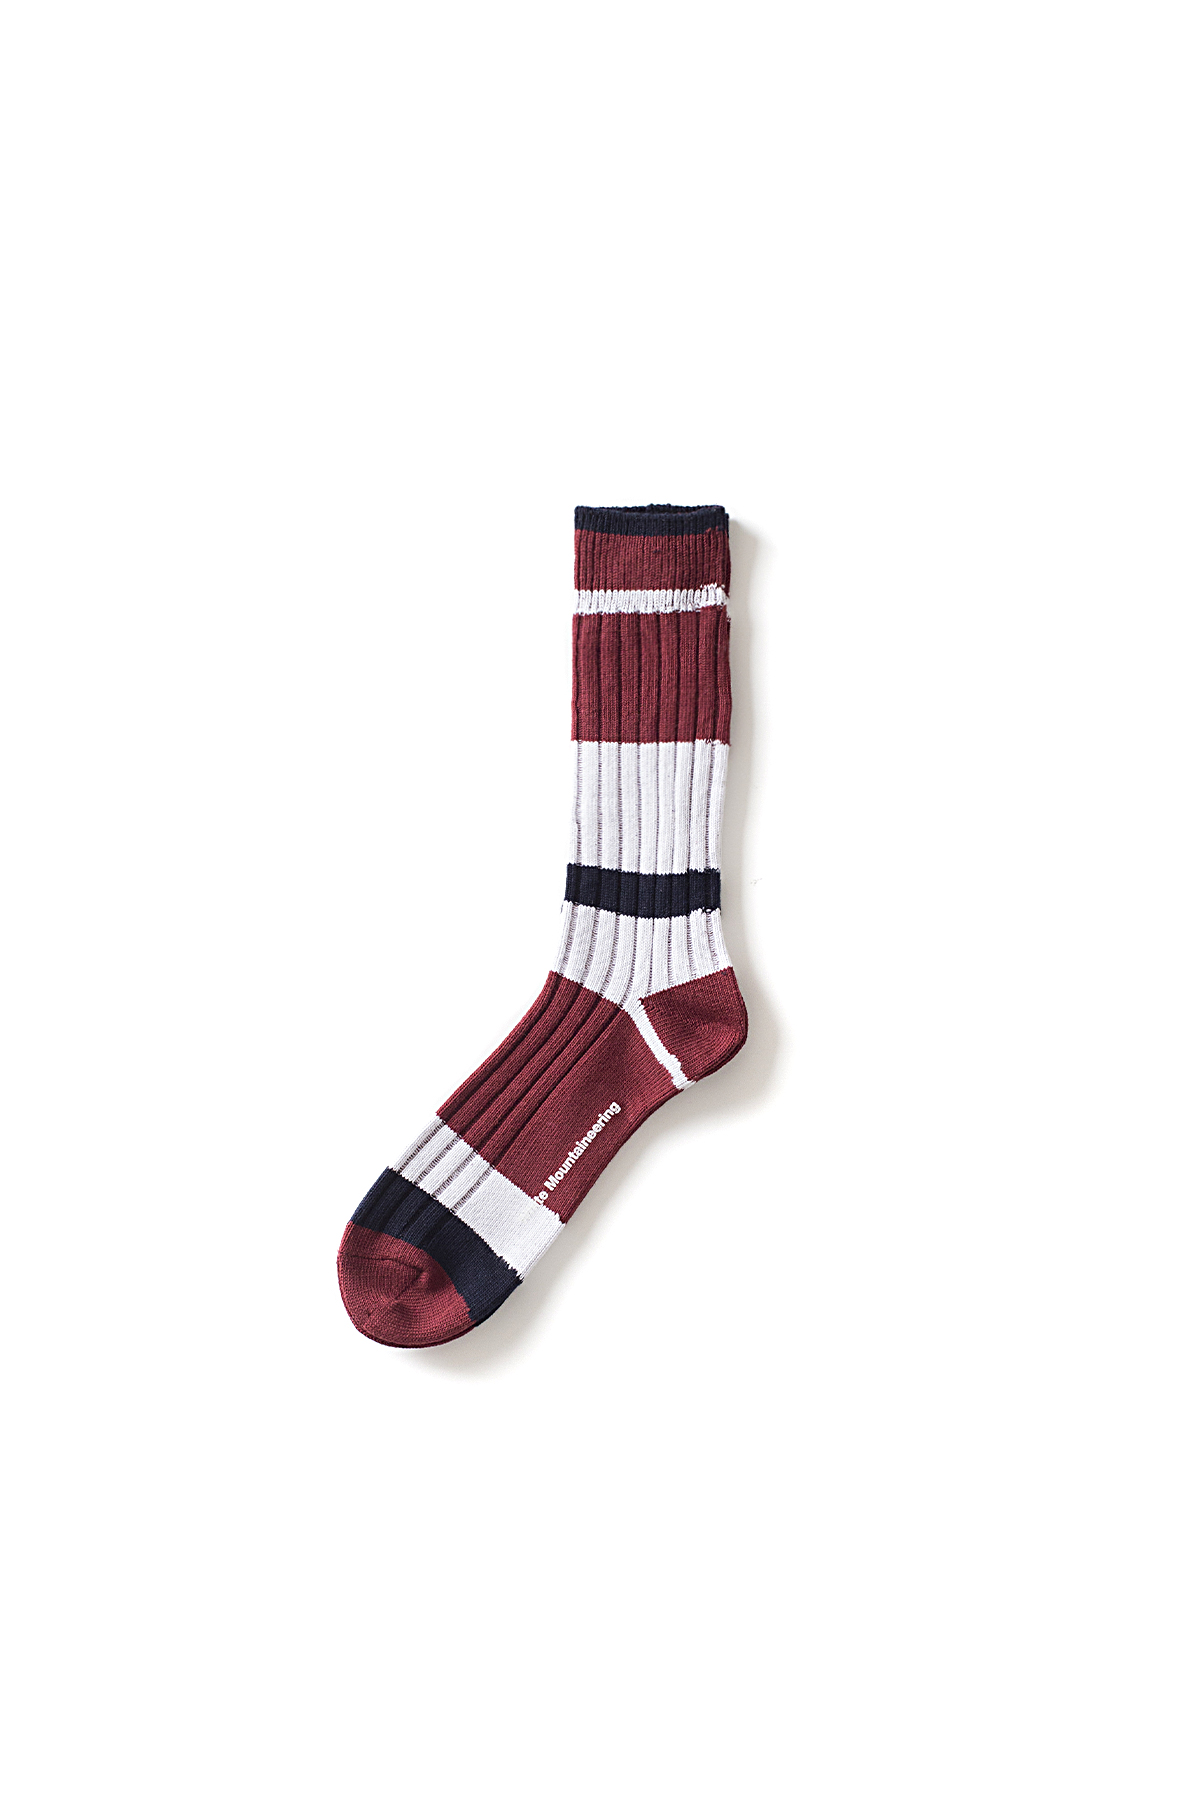 WHITE MOUNTAINEERING : Multi Border Middle Socks (Burgundy / Navy)